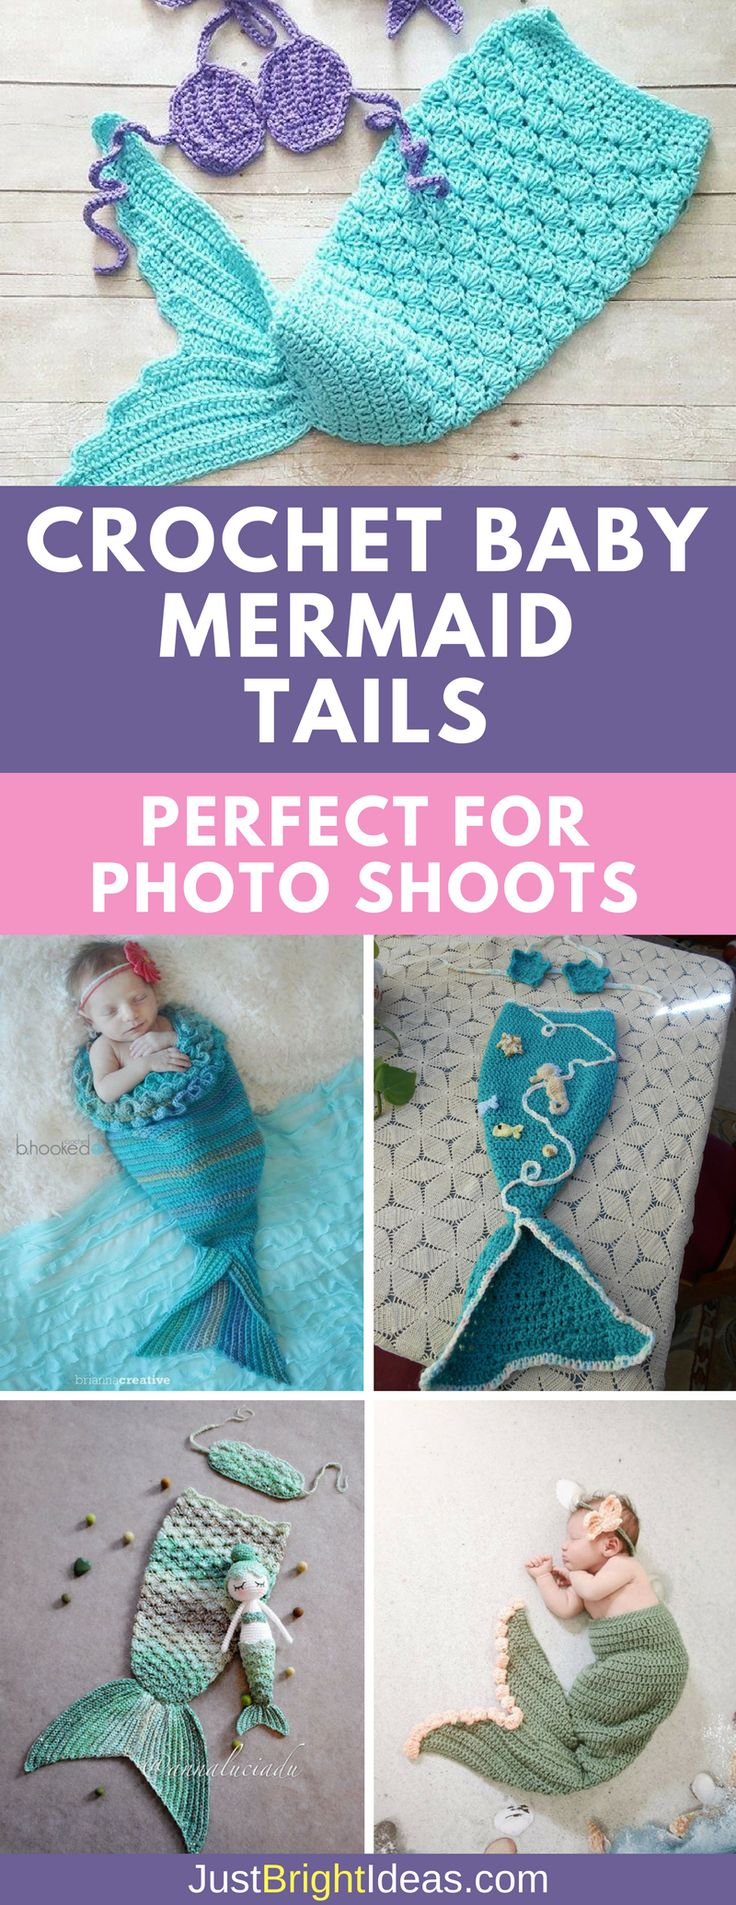 These crochet baby mermaid tail patterns are a must make if you are a planning a newborn photo shoot. Be sure to watch the video tutorials to show you how easy they are to make.